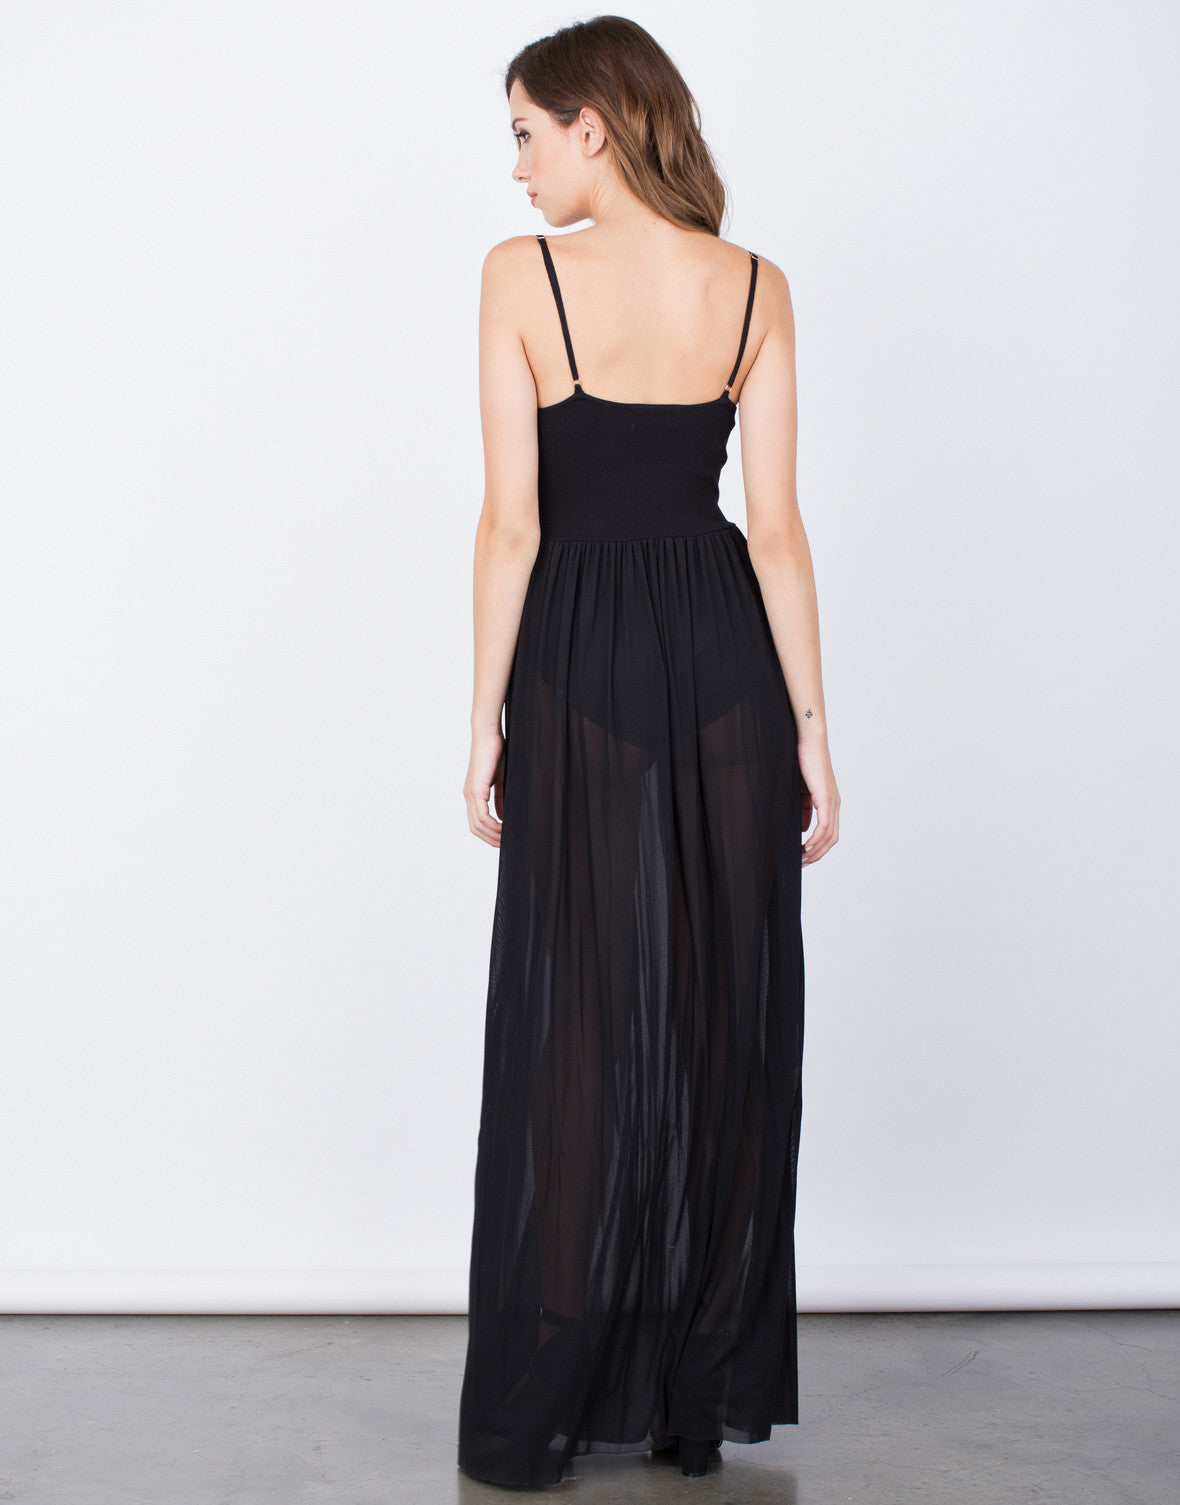 Back View of Romantic Maxi Dress